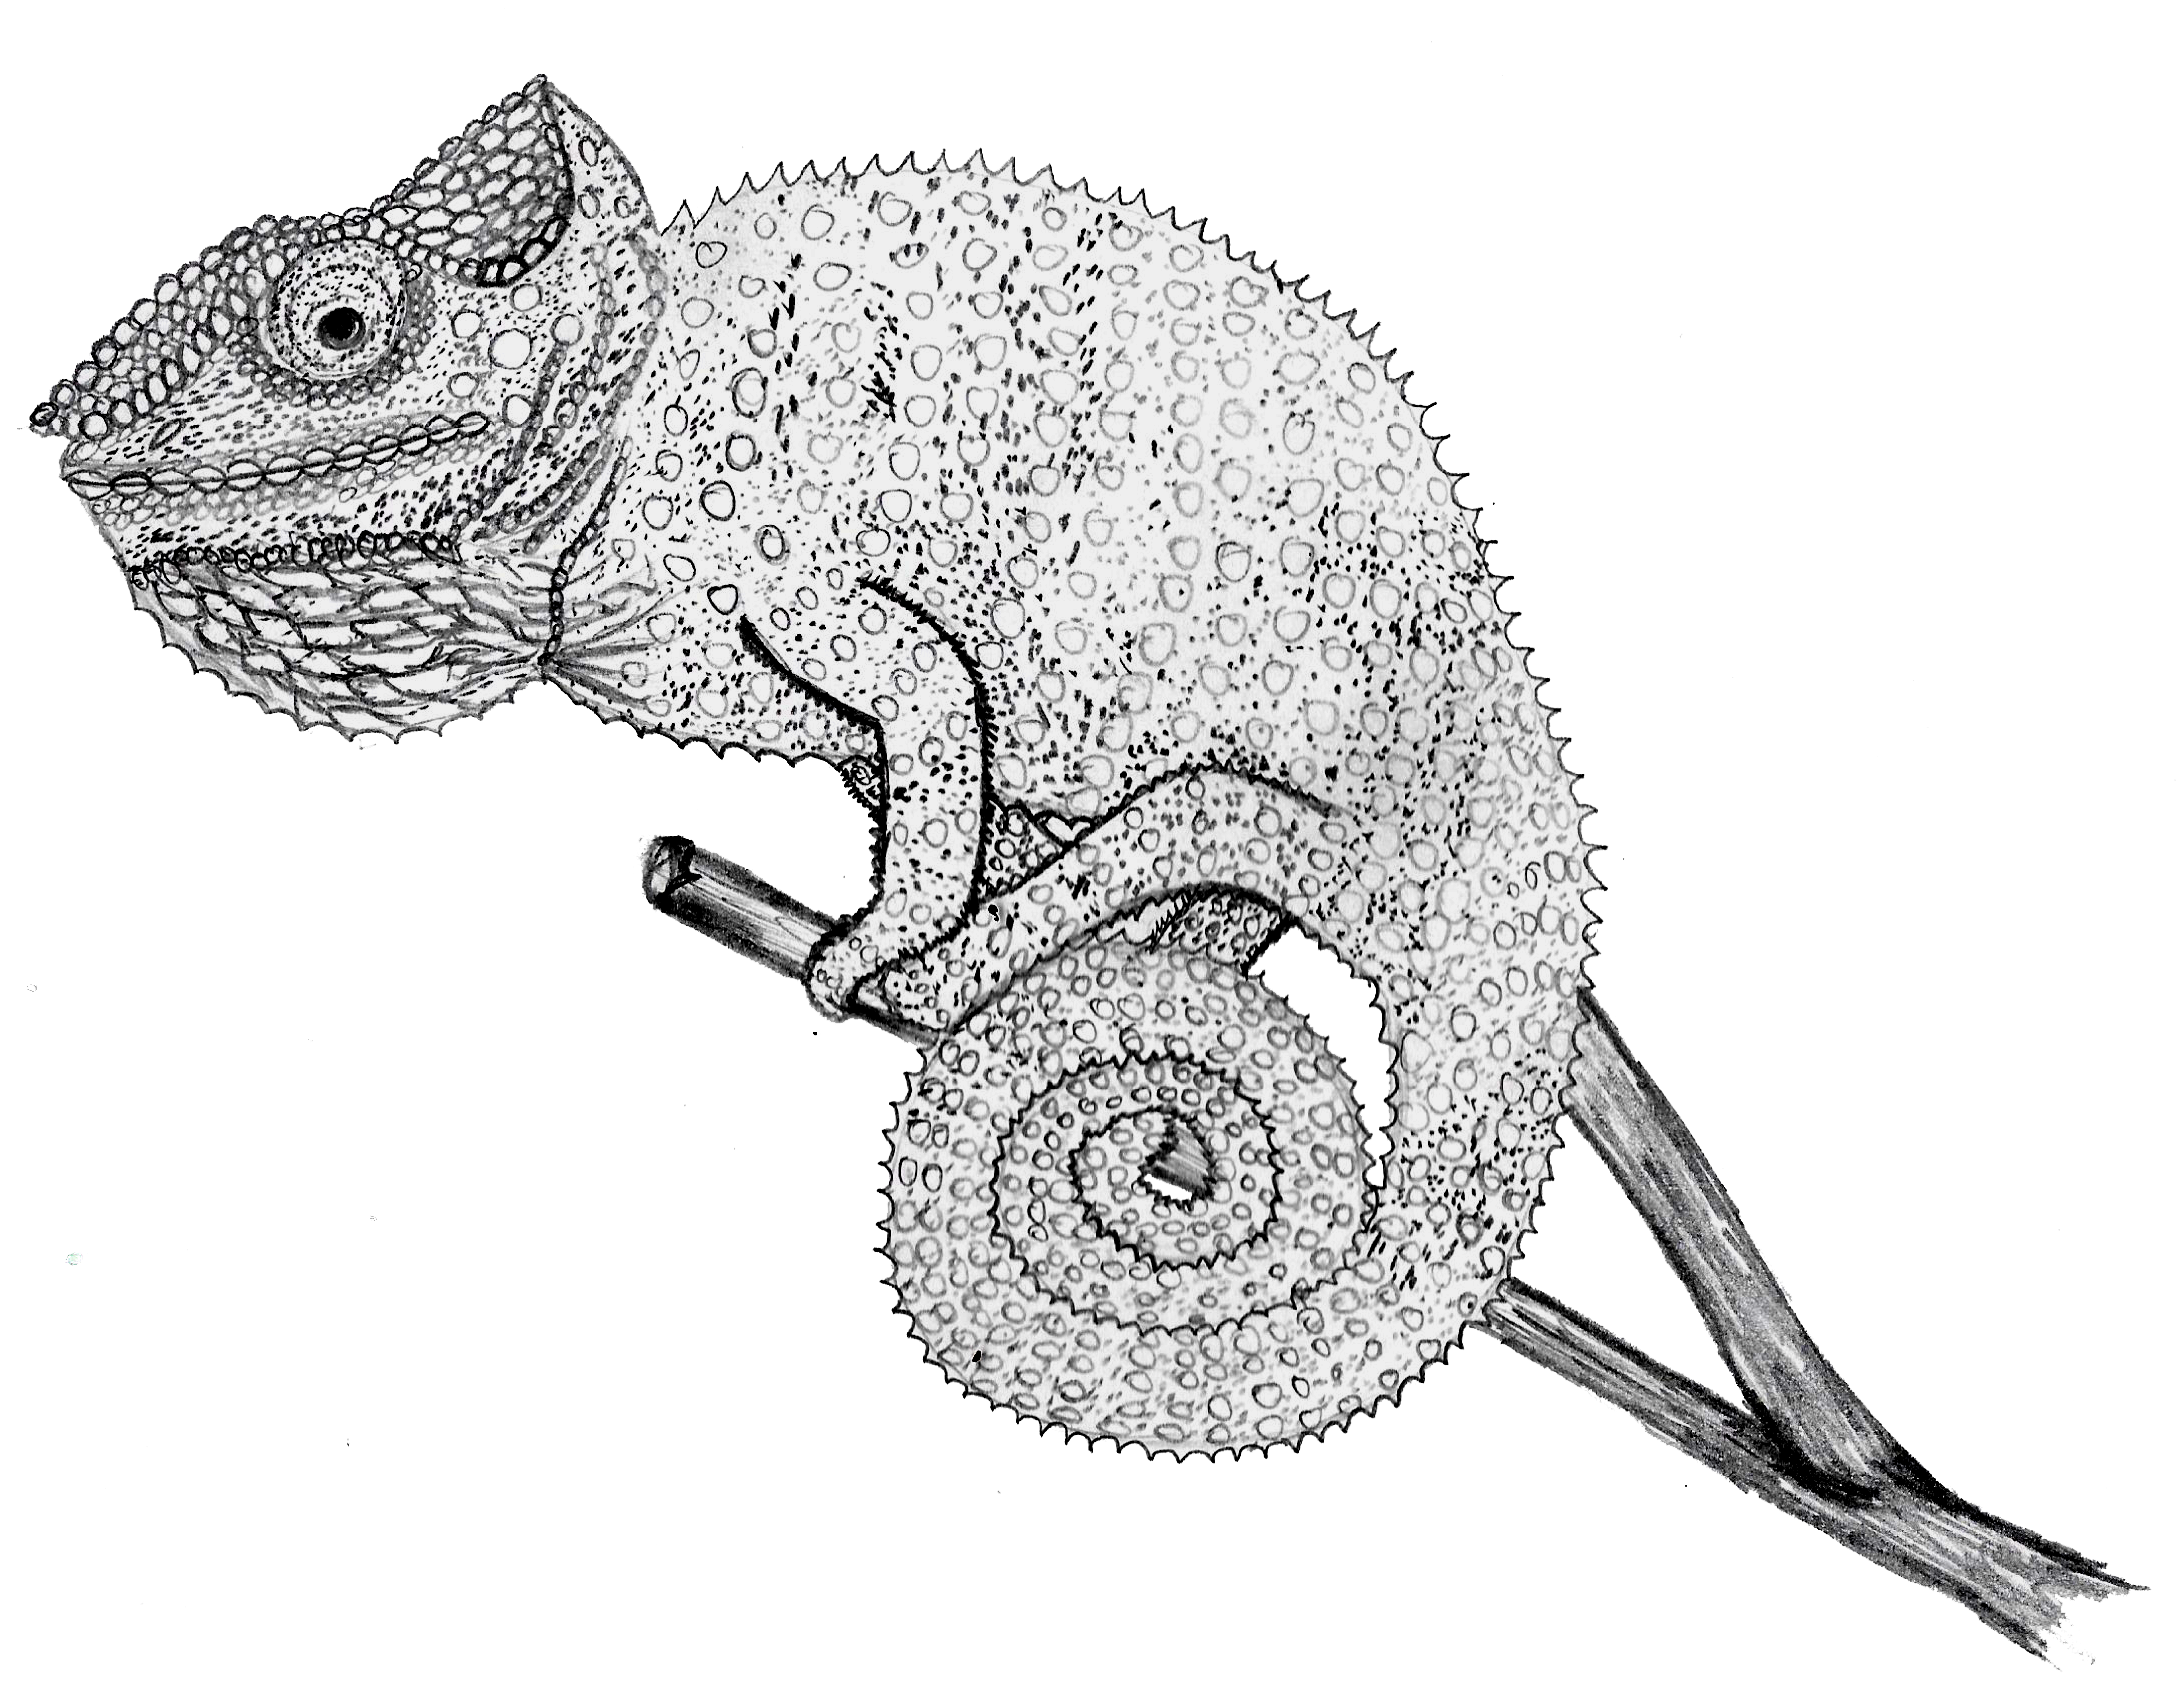 how to draw a chameleon chameleon outline drawing at paintingvalleycom explore a chameleon to how draw